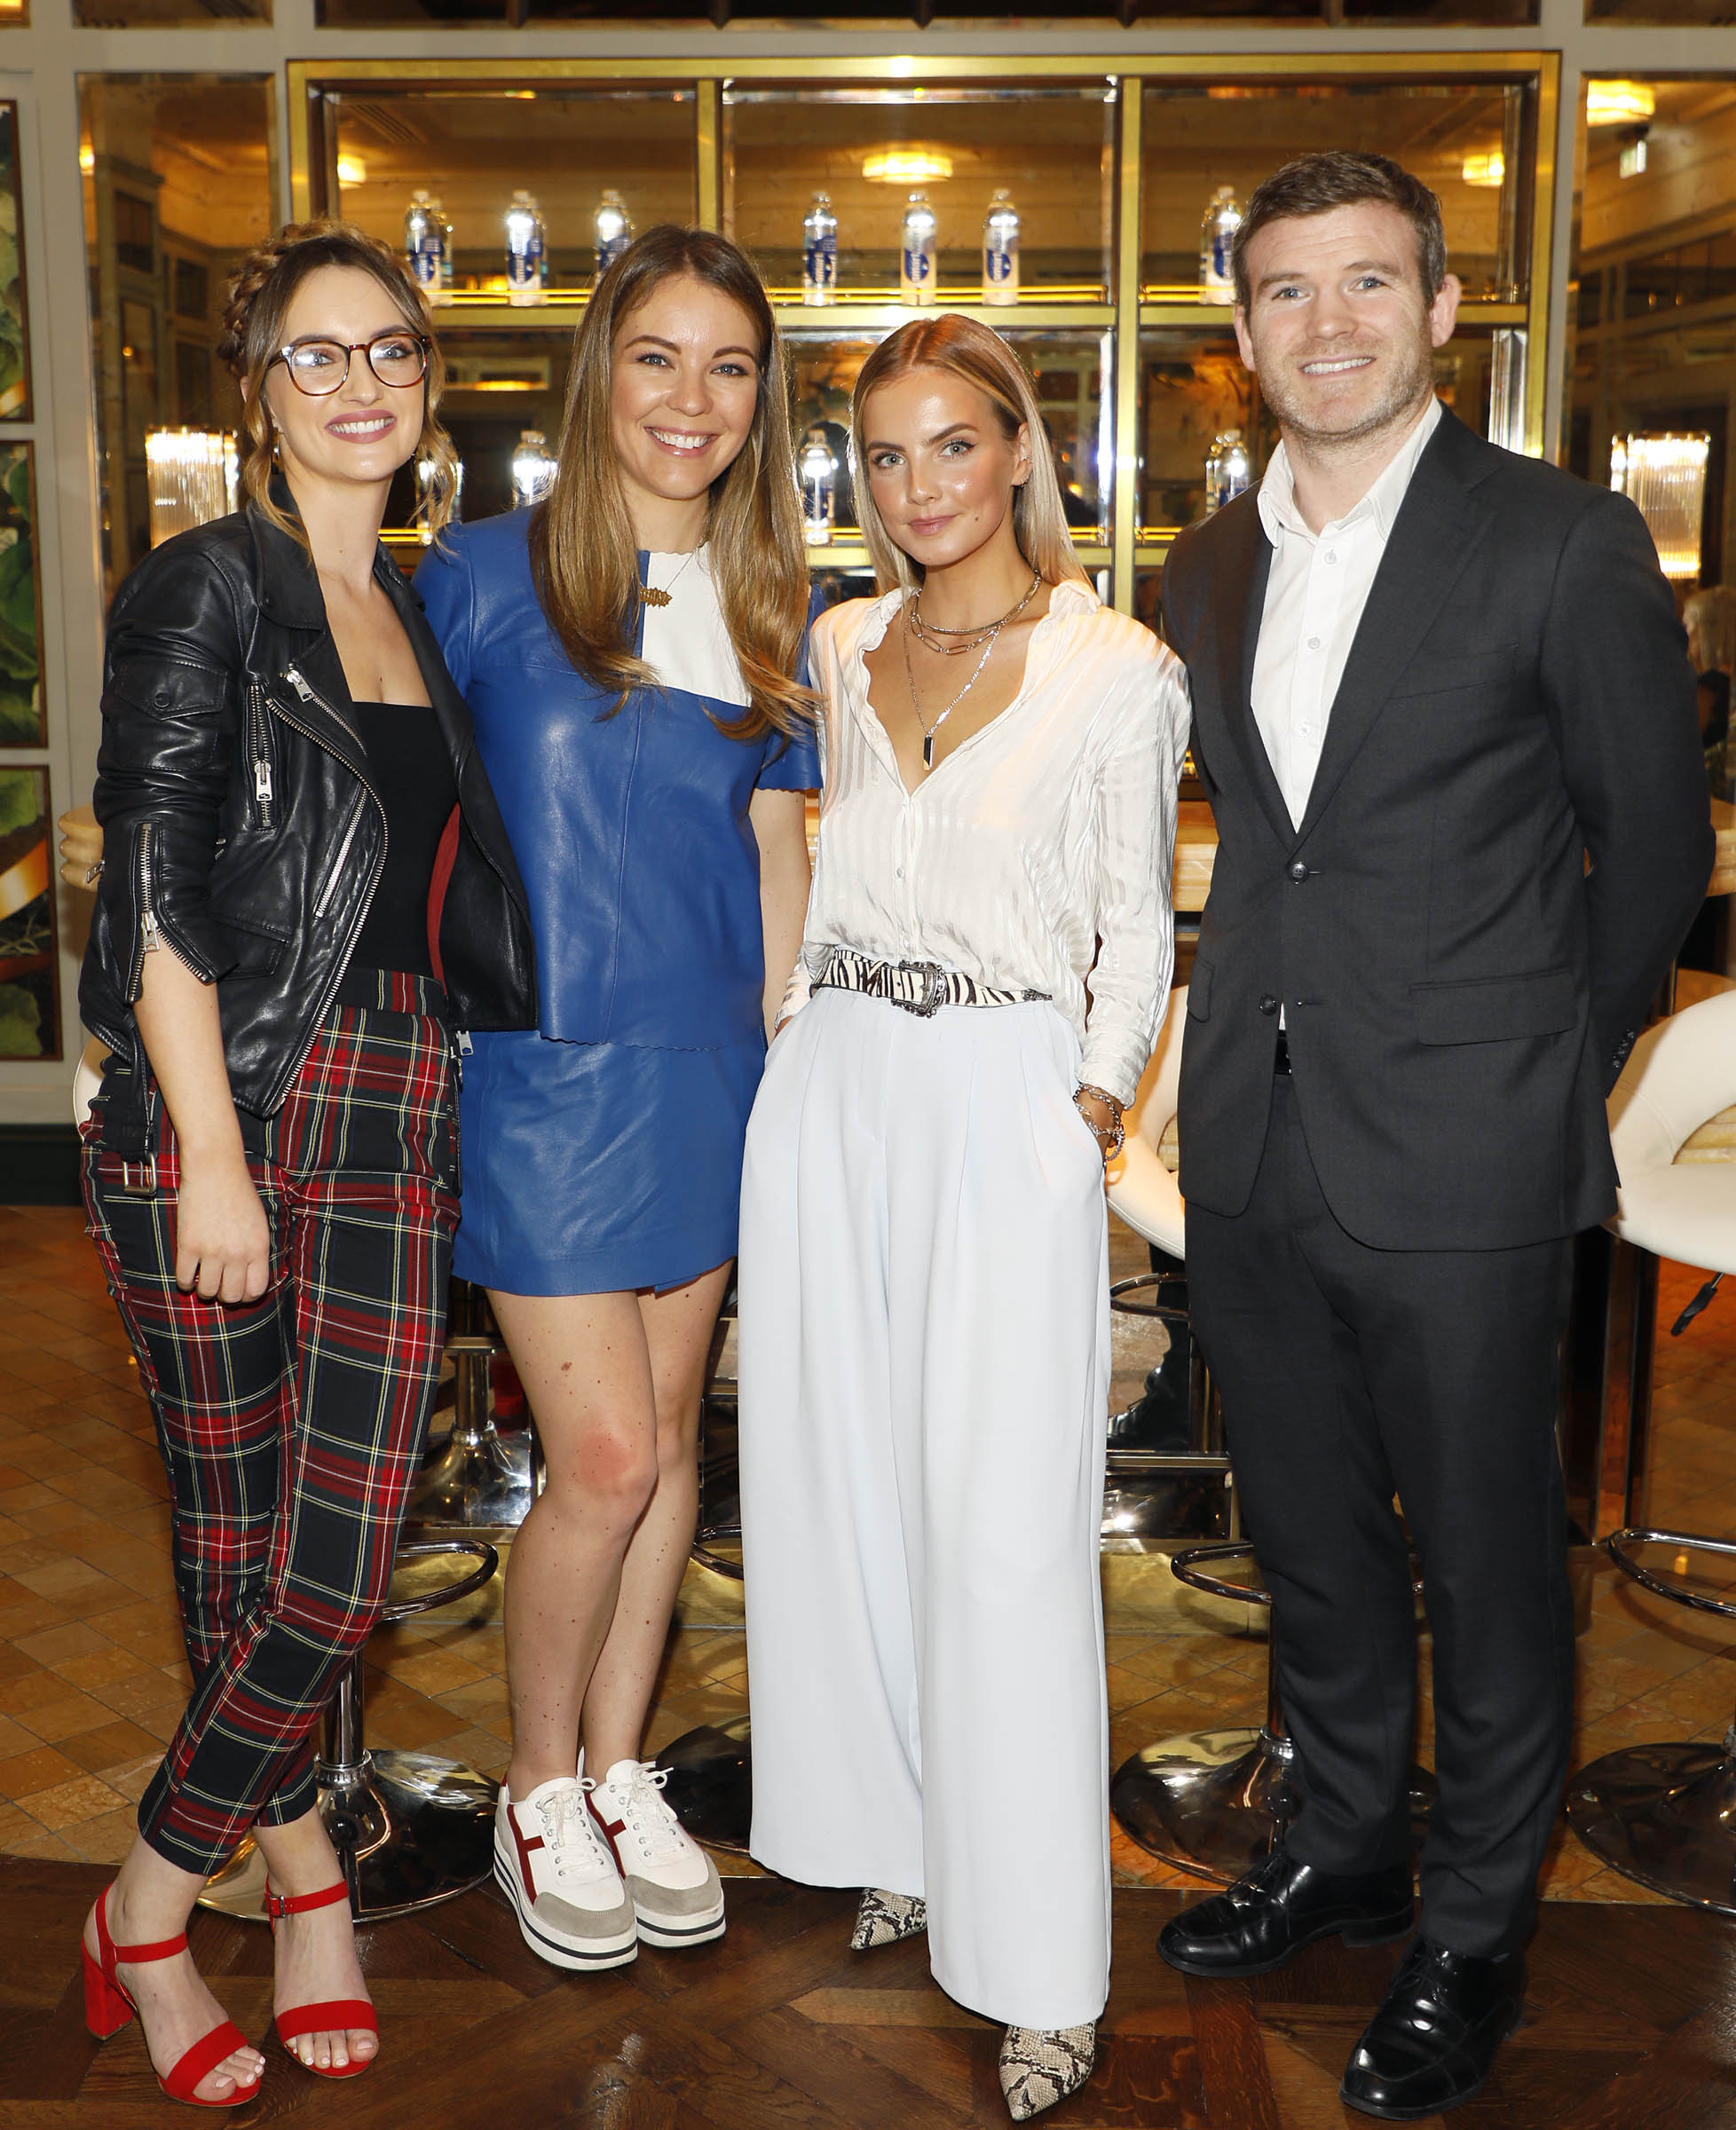 Caroline Foran , Emma Manley, Joanna Cooper and Gordon D'Arcy at the launch of Smartwater which was held at the Ivy .photo Kieran Harnettno repro fee